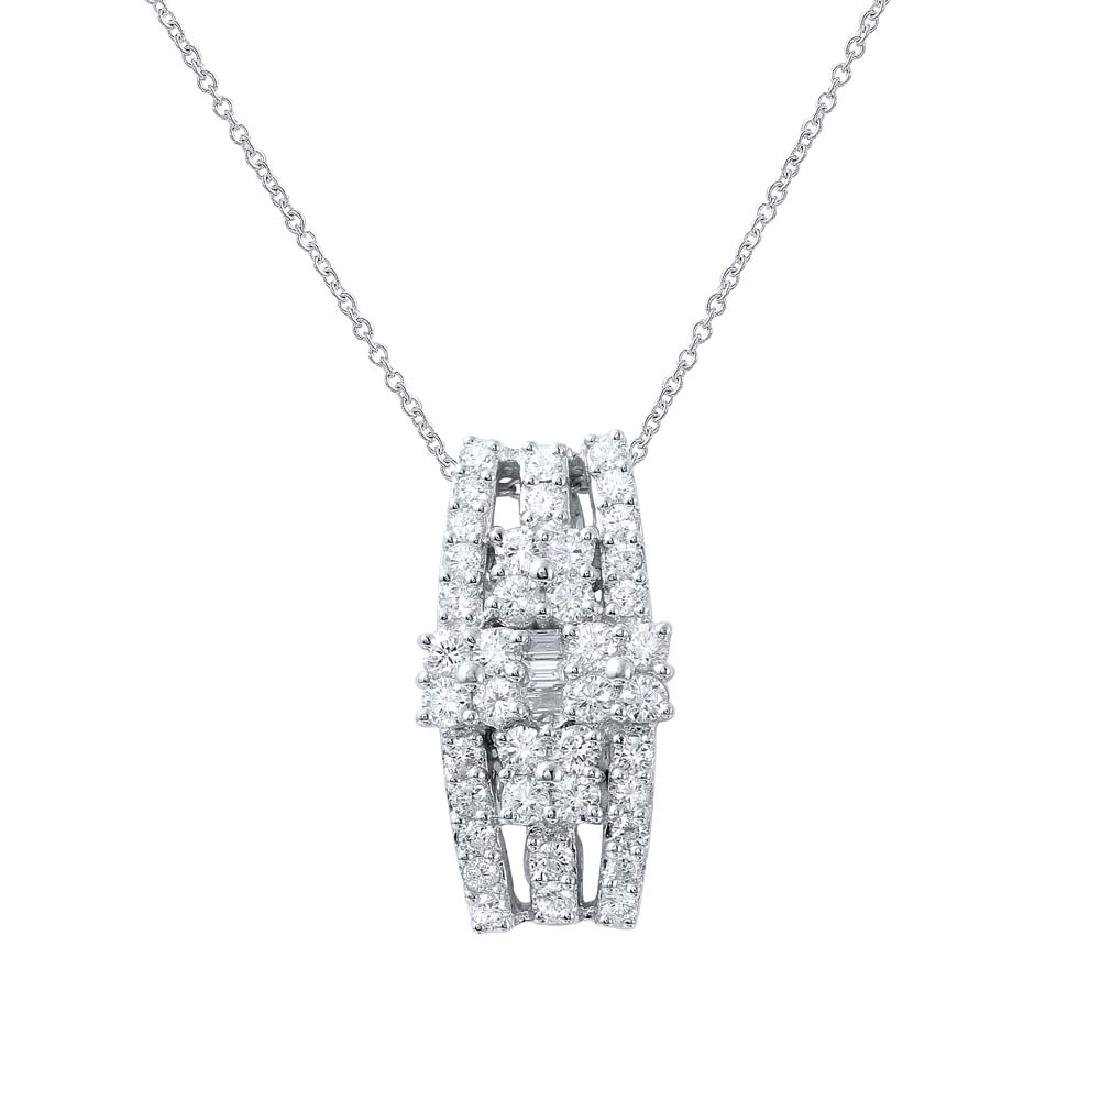 Genuine 1.07 TCW 18K White Gold Ladies Necklace